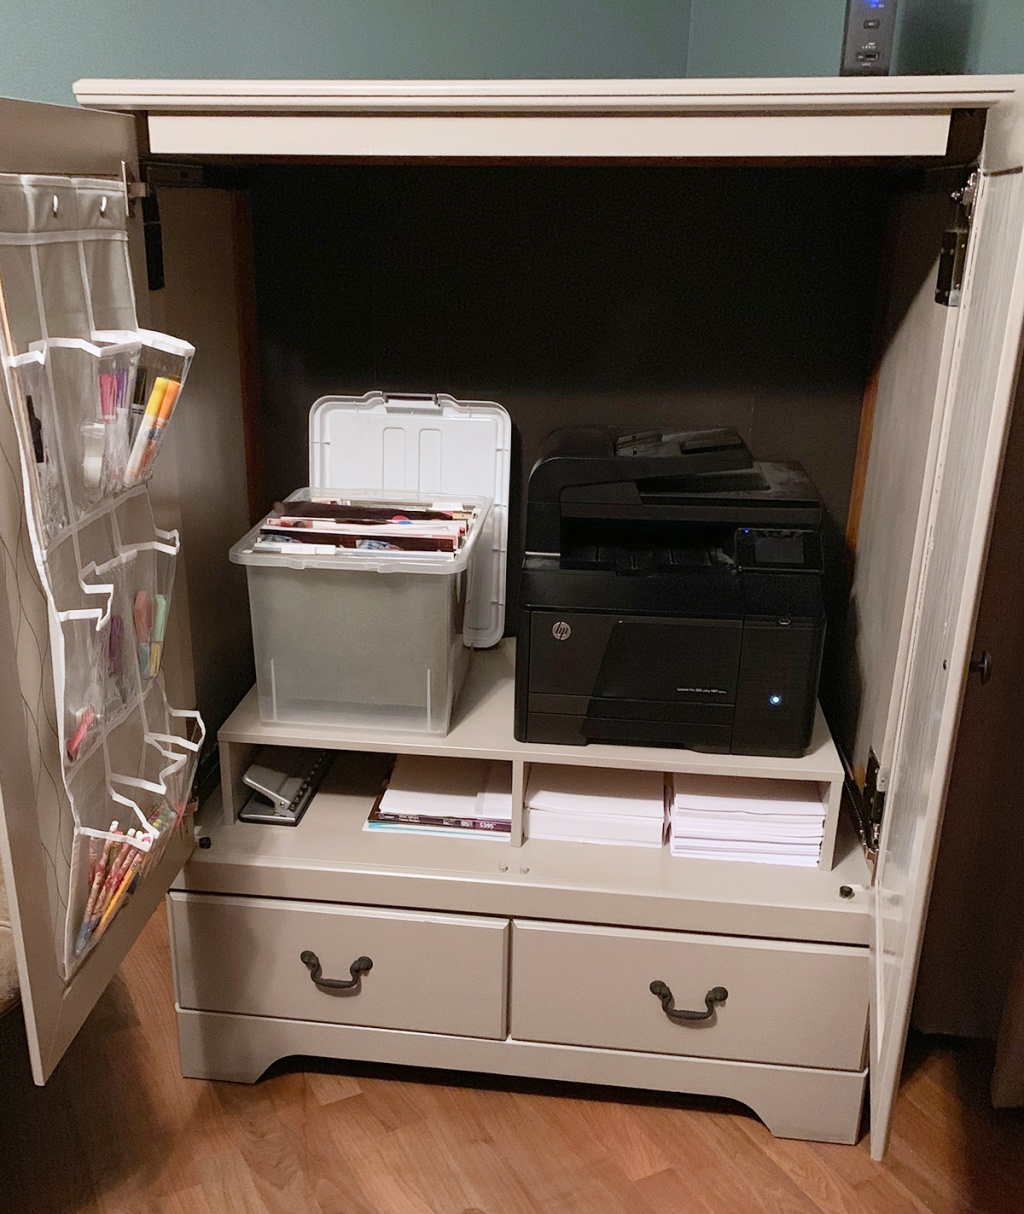 Finished wardrobe cabinet with printer and school supplies